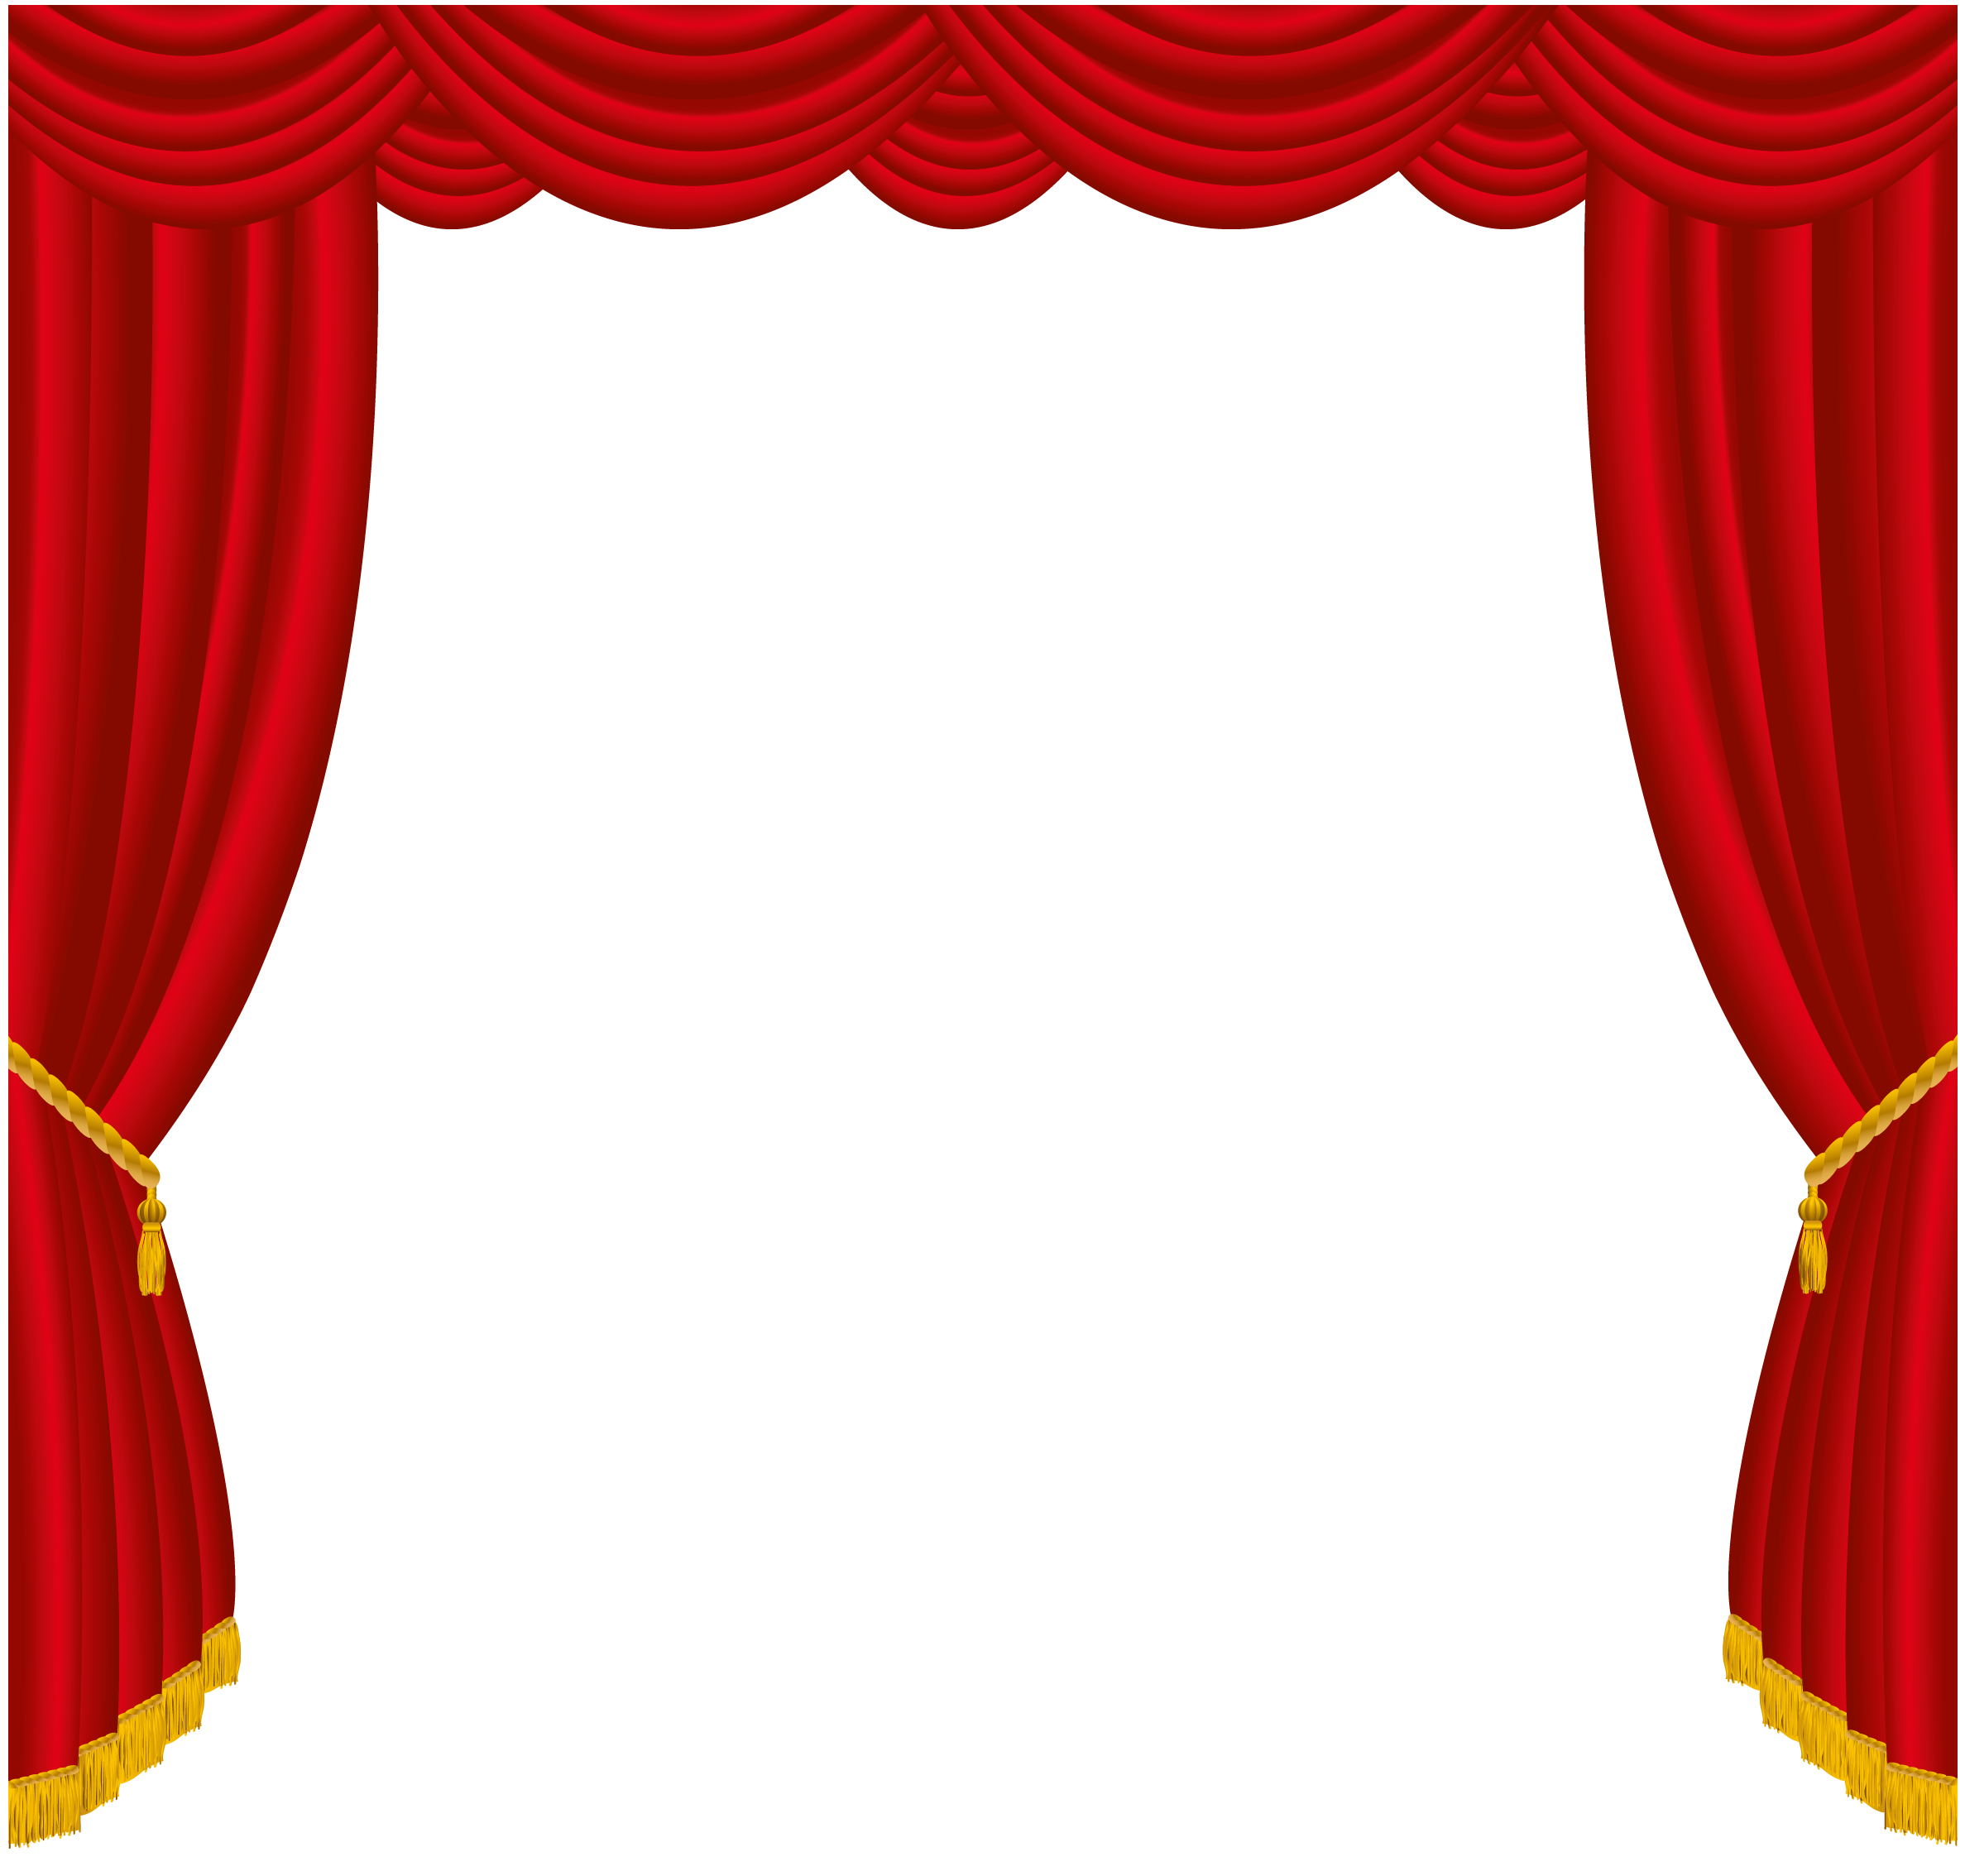 Transparent red curtains decor. Curtain clipart vector royalty free download